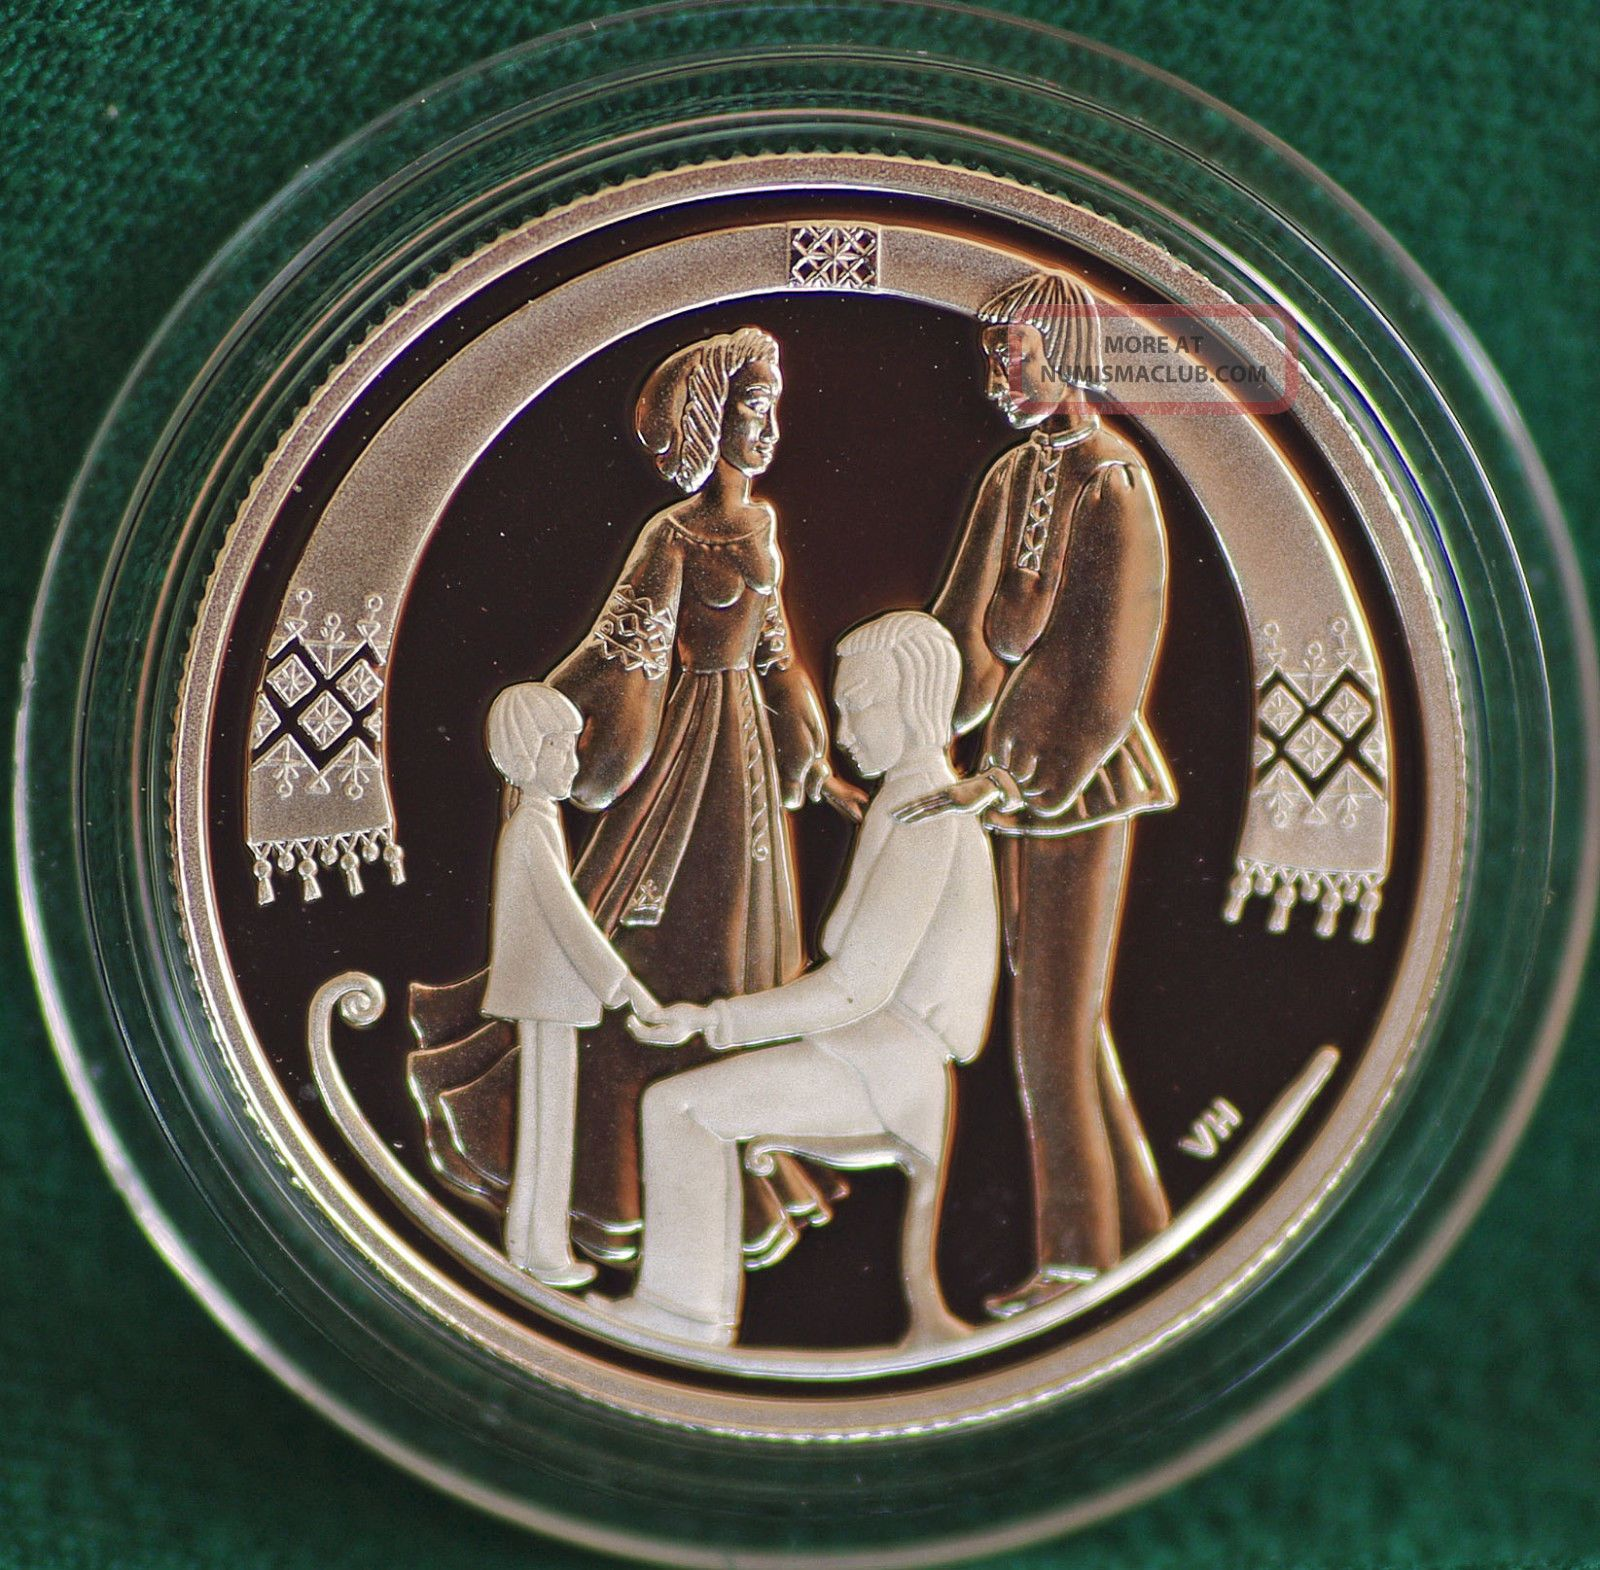 2001 Canada The Sled - Folklore Silver Proof 50 Cent - - Coin Only Coins: Canada photo